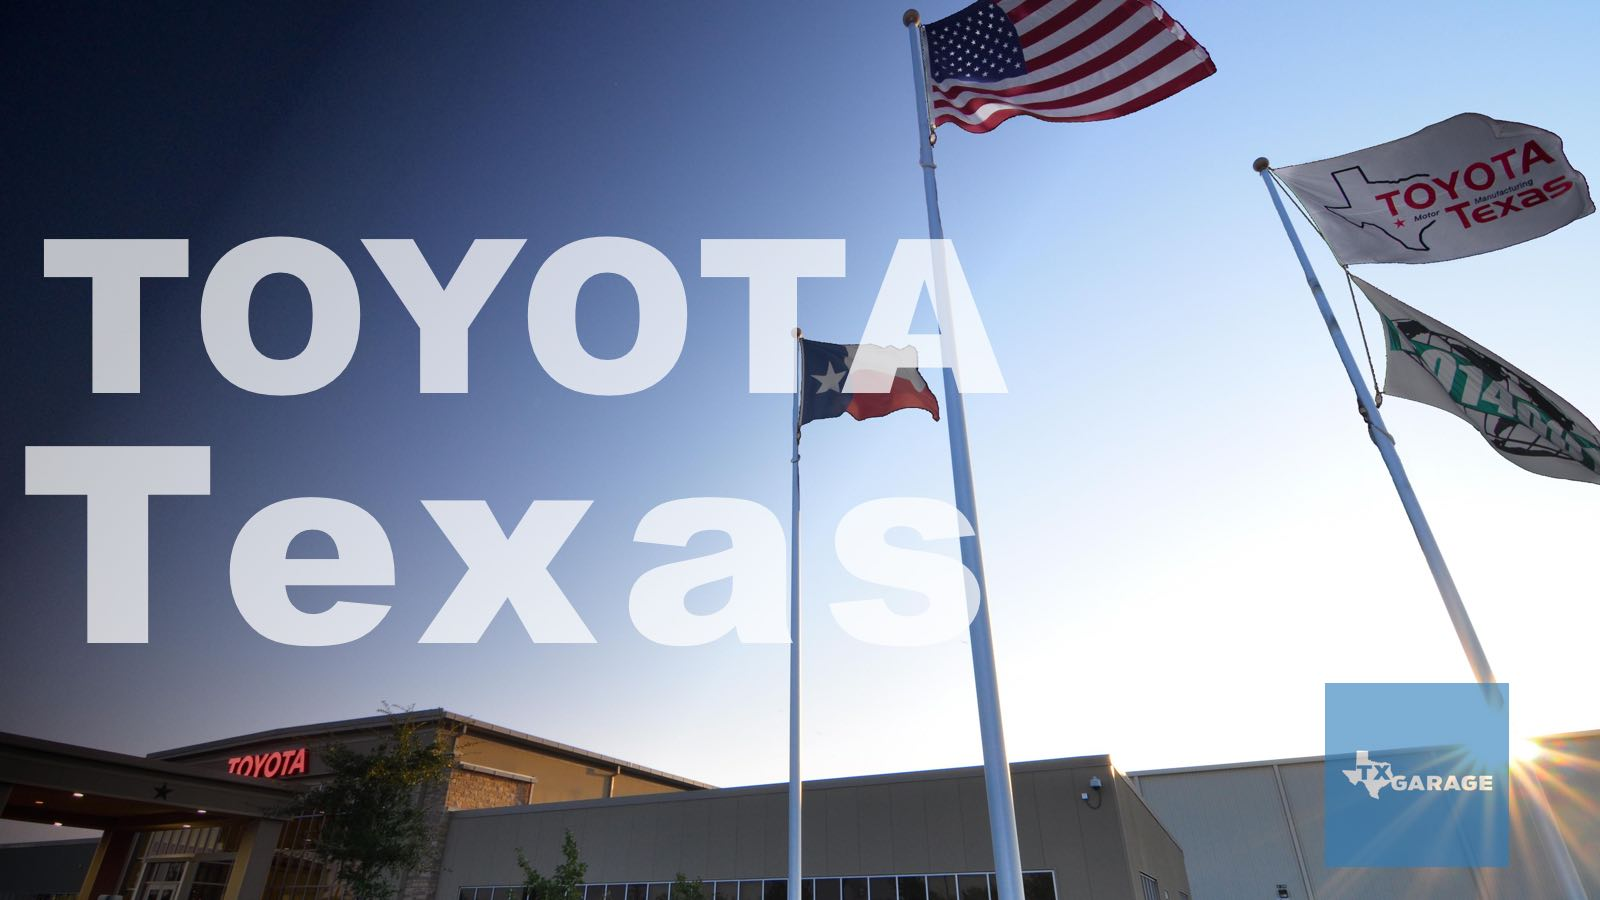 A Look Inside Toyota's Truck Plant: San Antonio Rose